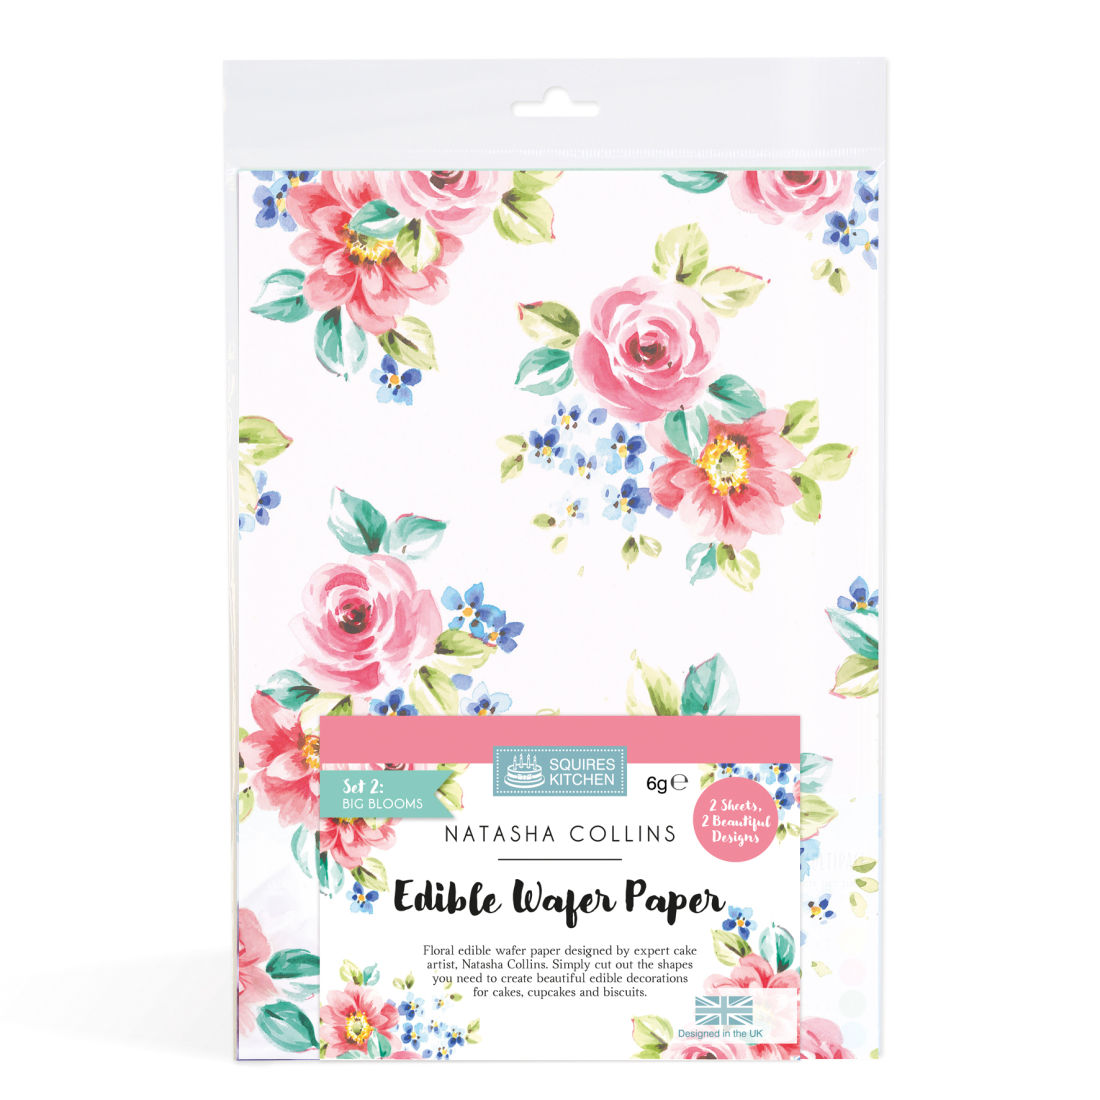 Sk Edible Wafer Paper By Natasha Collins Big Blooms Squires